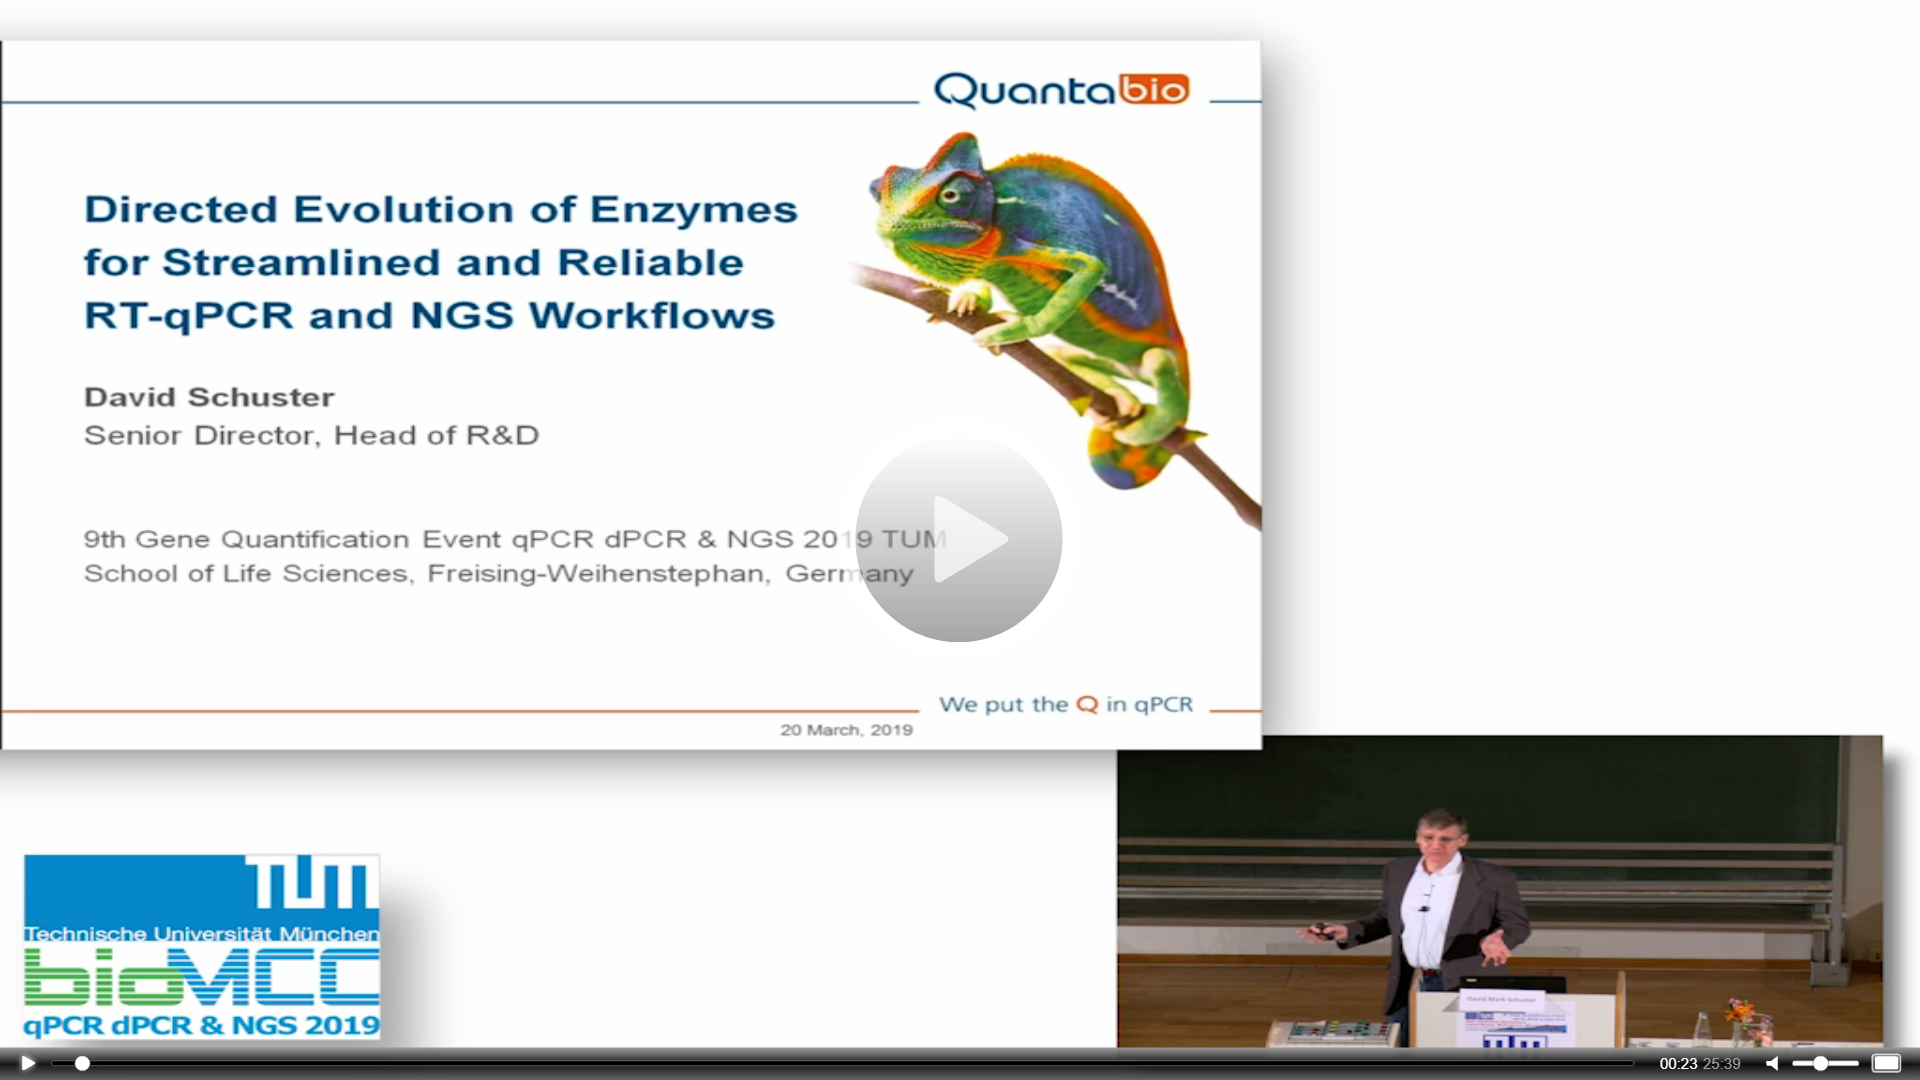 Directed Evolution of Enzymes for Streamlined and Reliable RT-qPCR and NGS Workflows